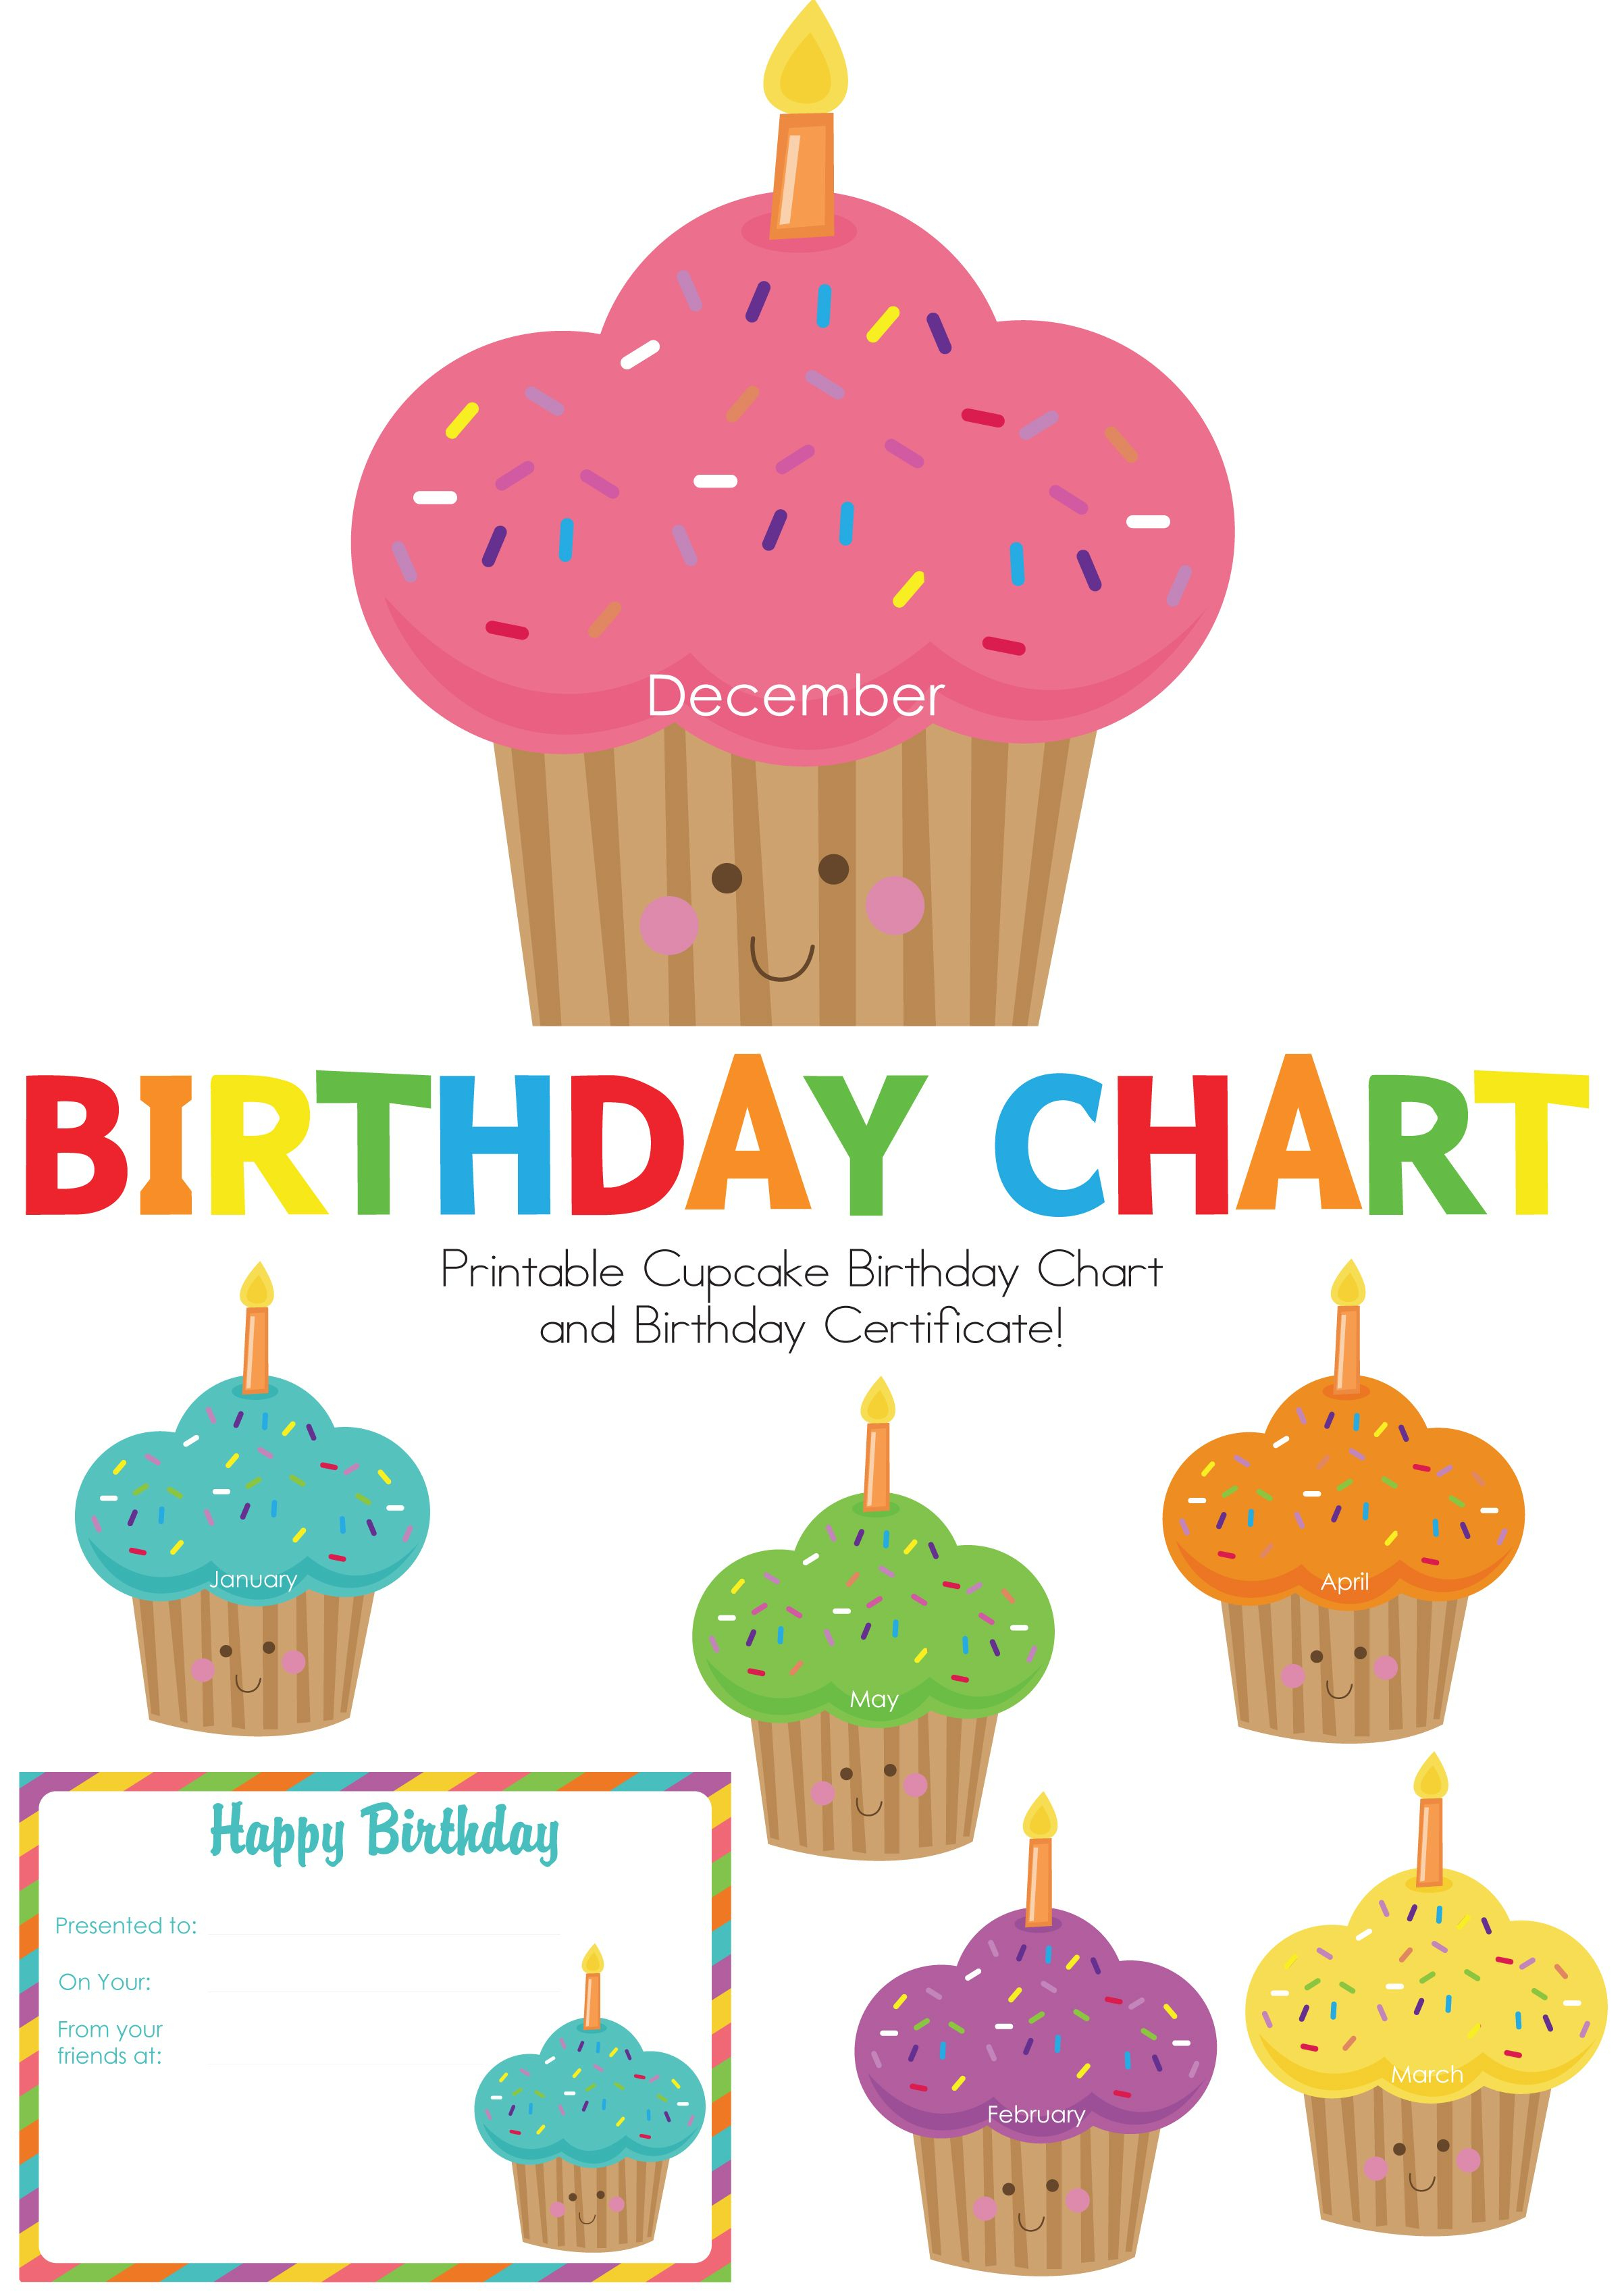 Cupcake Birthday Chart | Birthday Charts, Birthday Chart with regard to Cupcake Birthday Chart